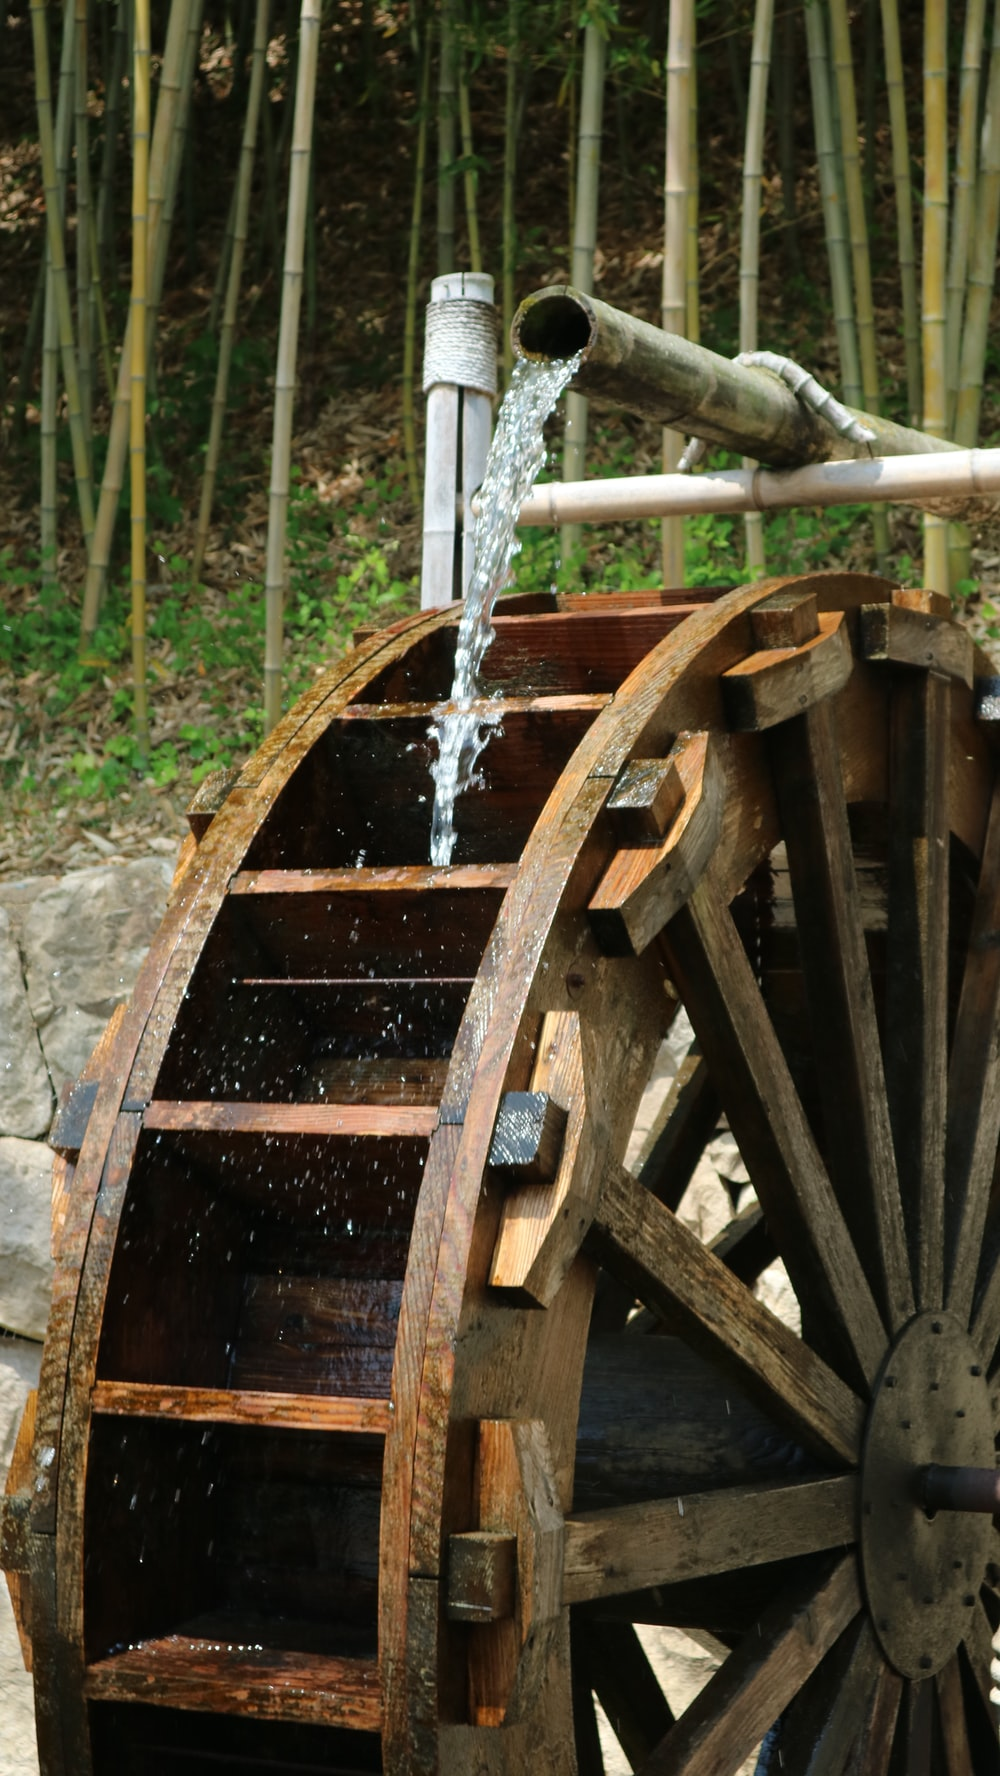 brown wooden wheel with water